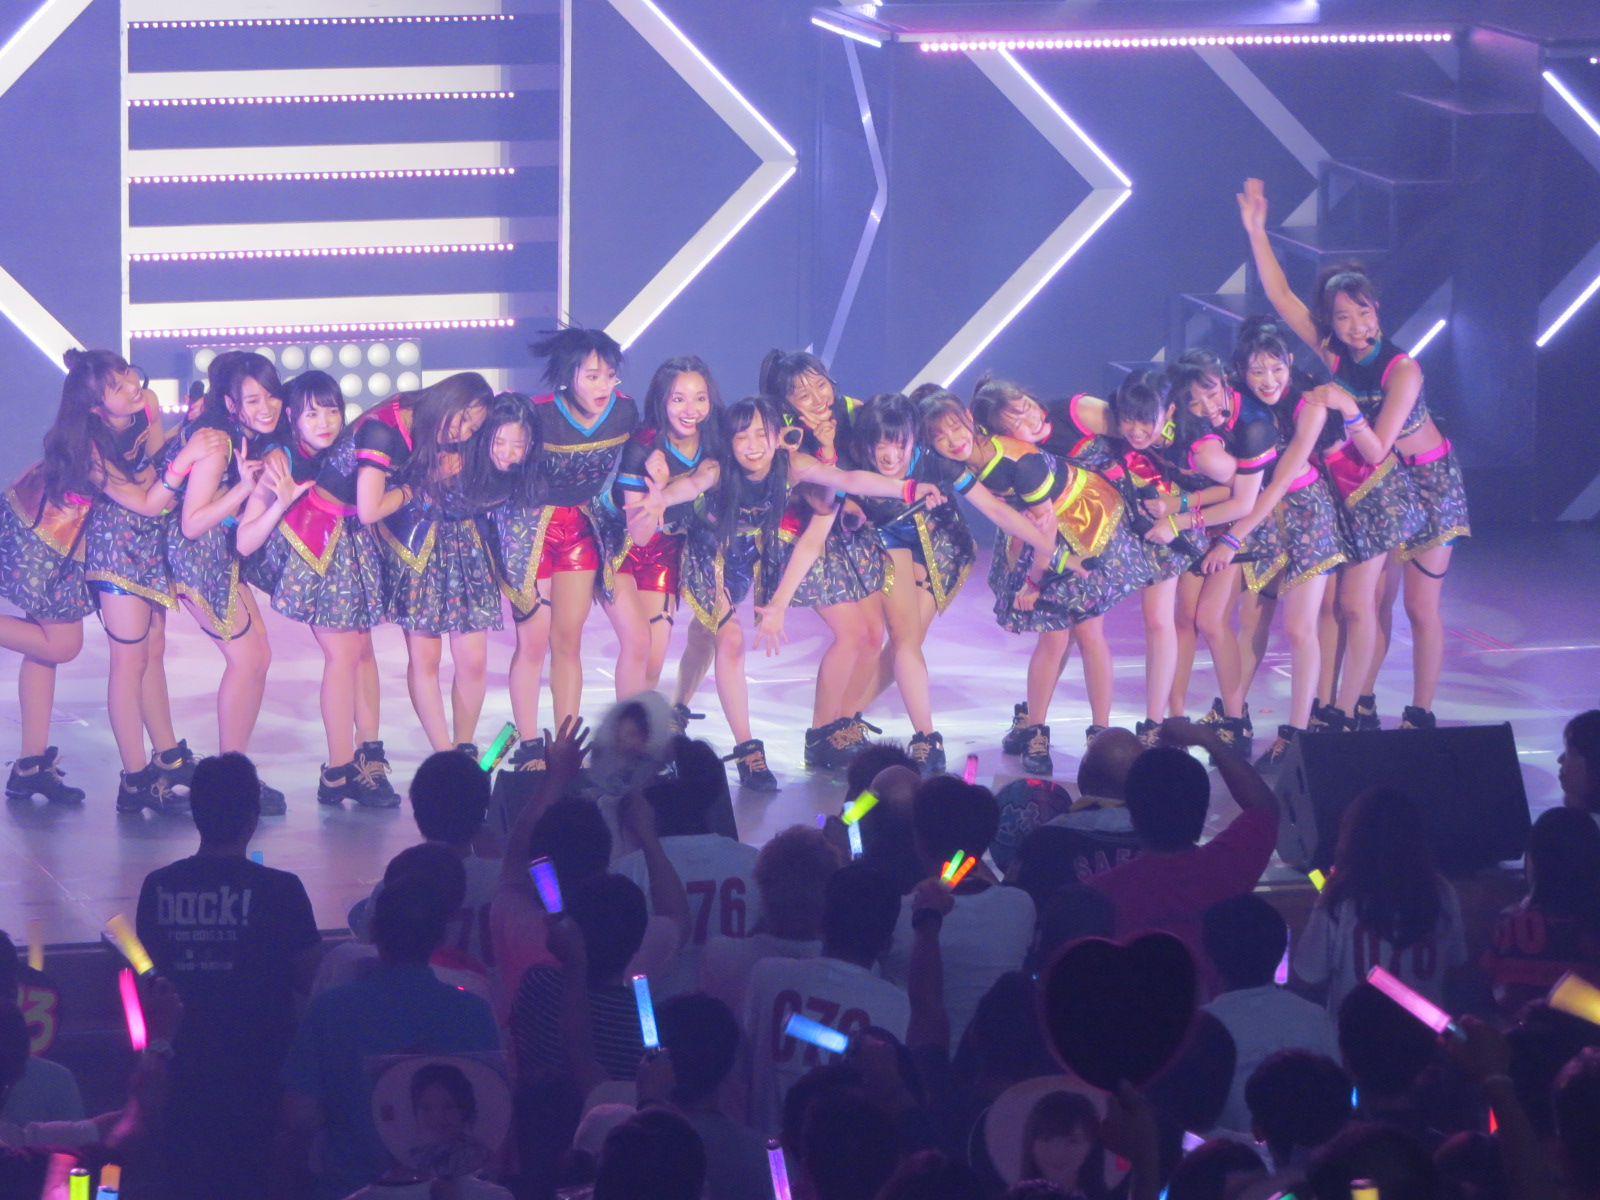 NMB48 LIVE TOUR 2018 in Summer・石川公演の画像-104